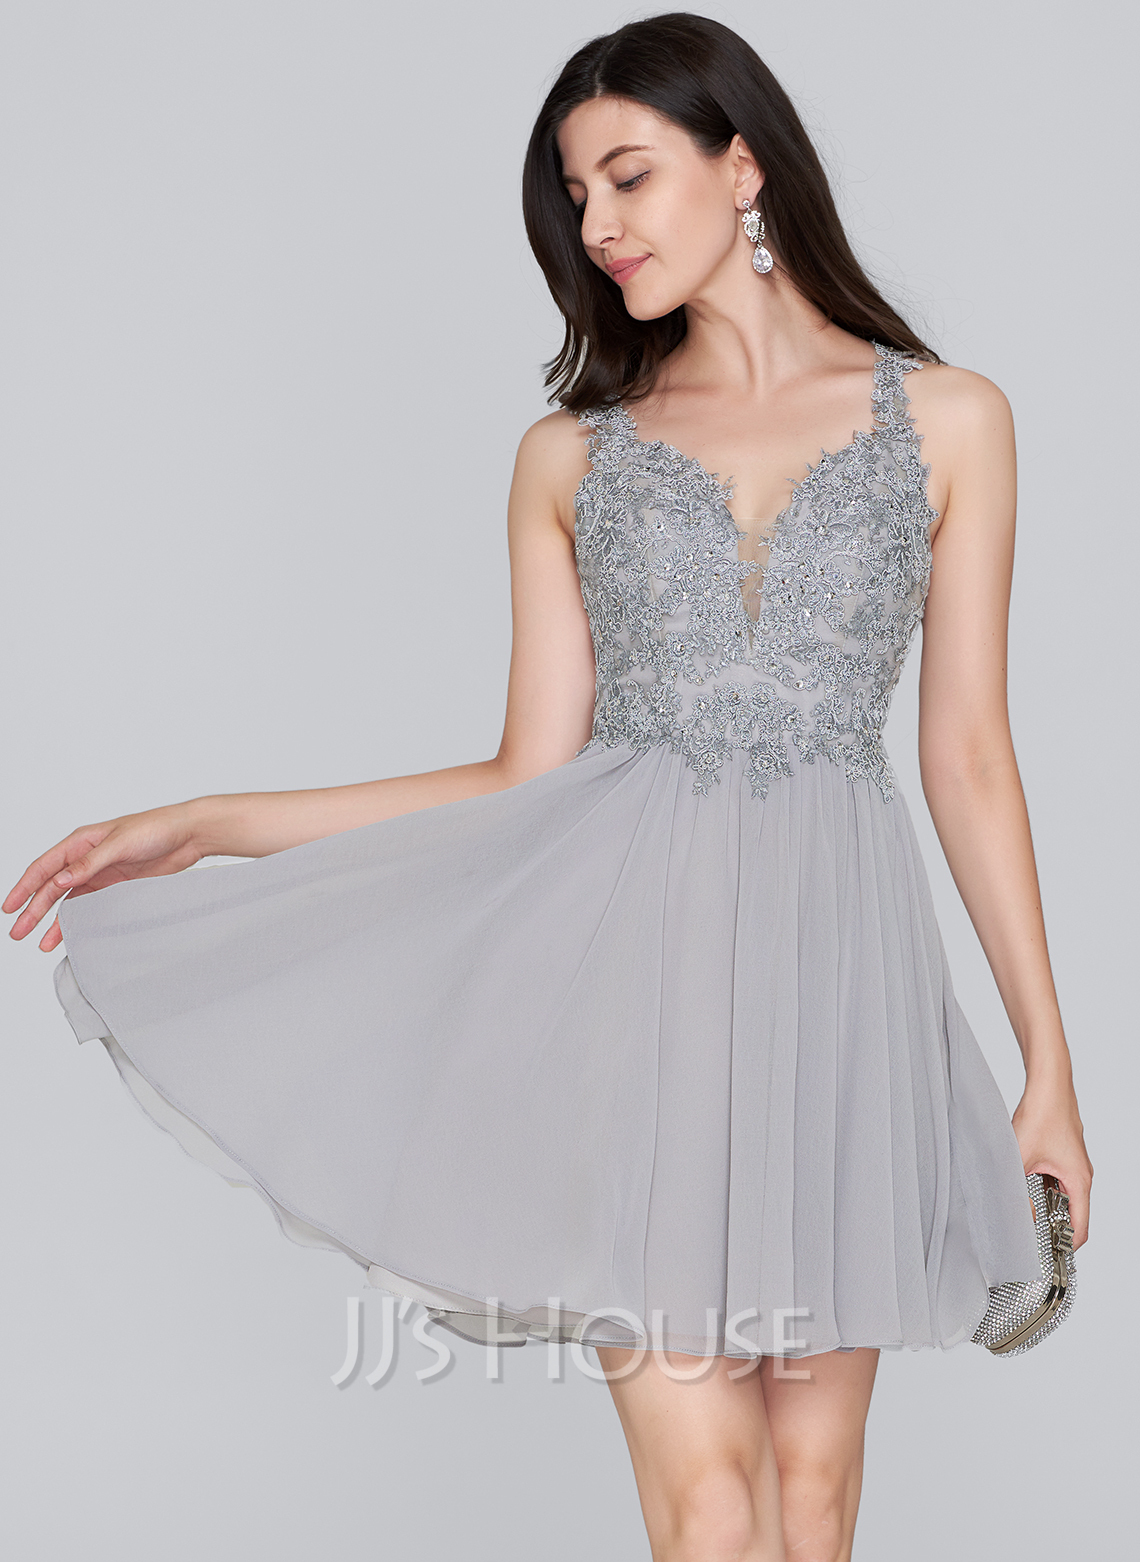 f1519feb943 A-Line Princess Sweetheart Short Mini Chiffon Homecoming Dress With Beading  Sequins. Loading zoom